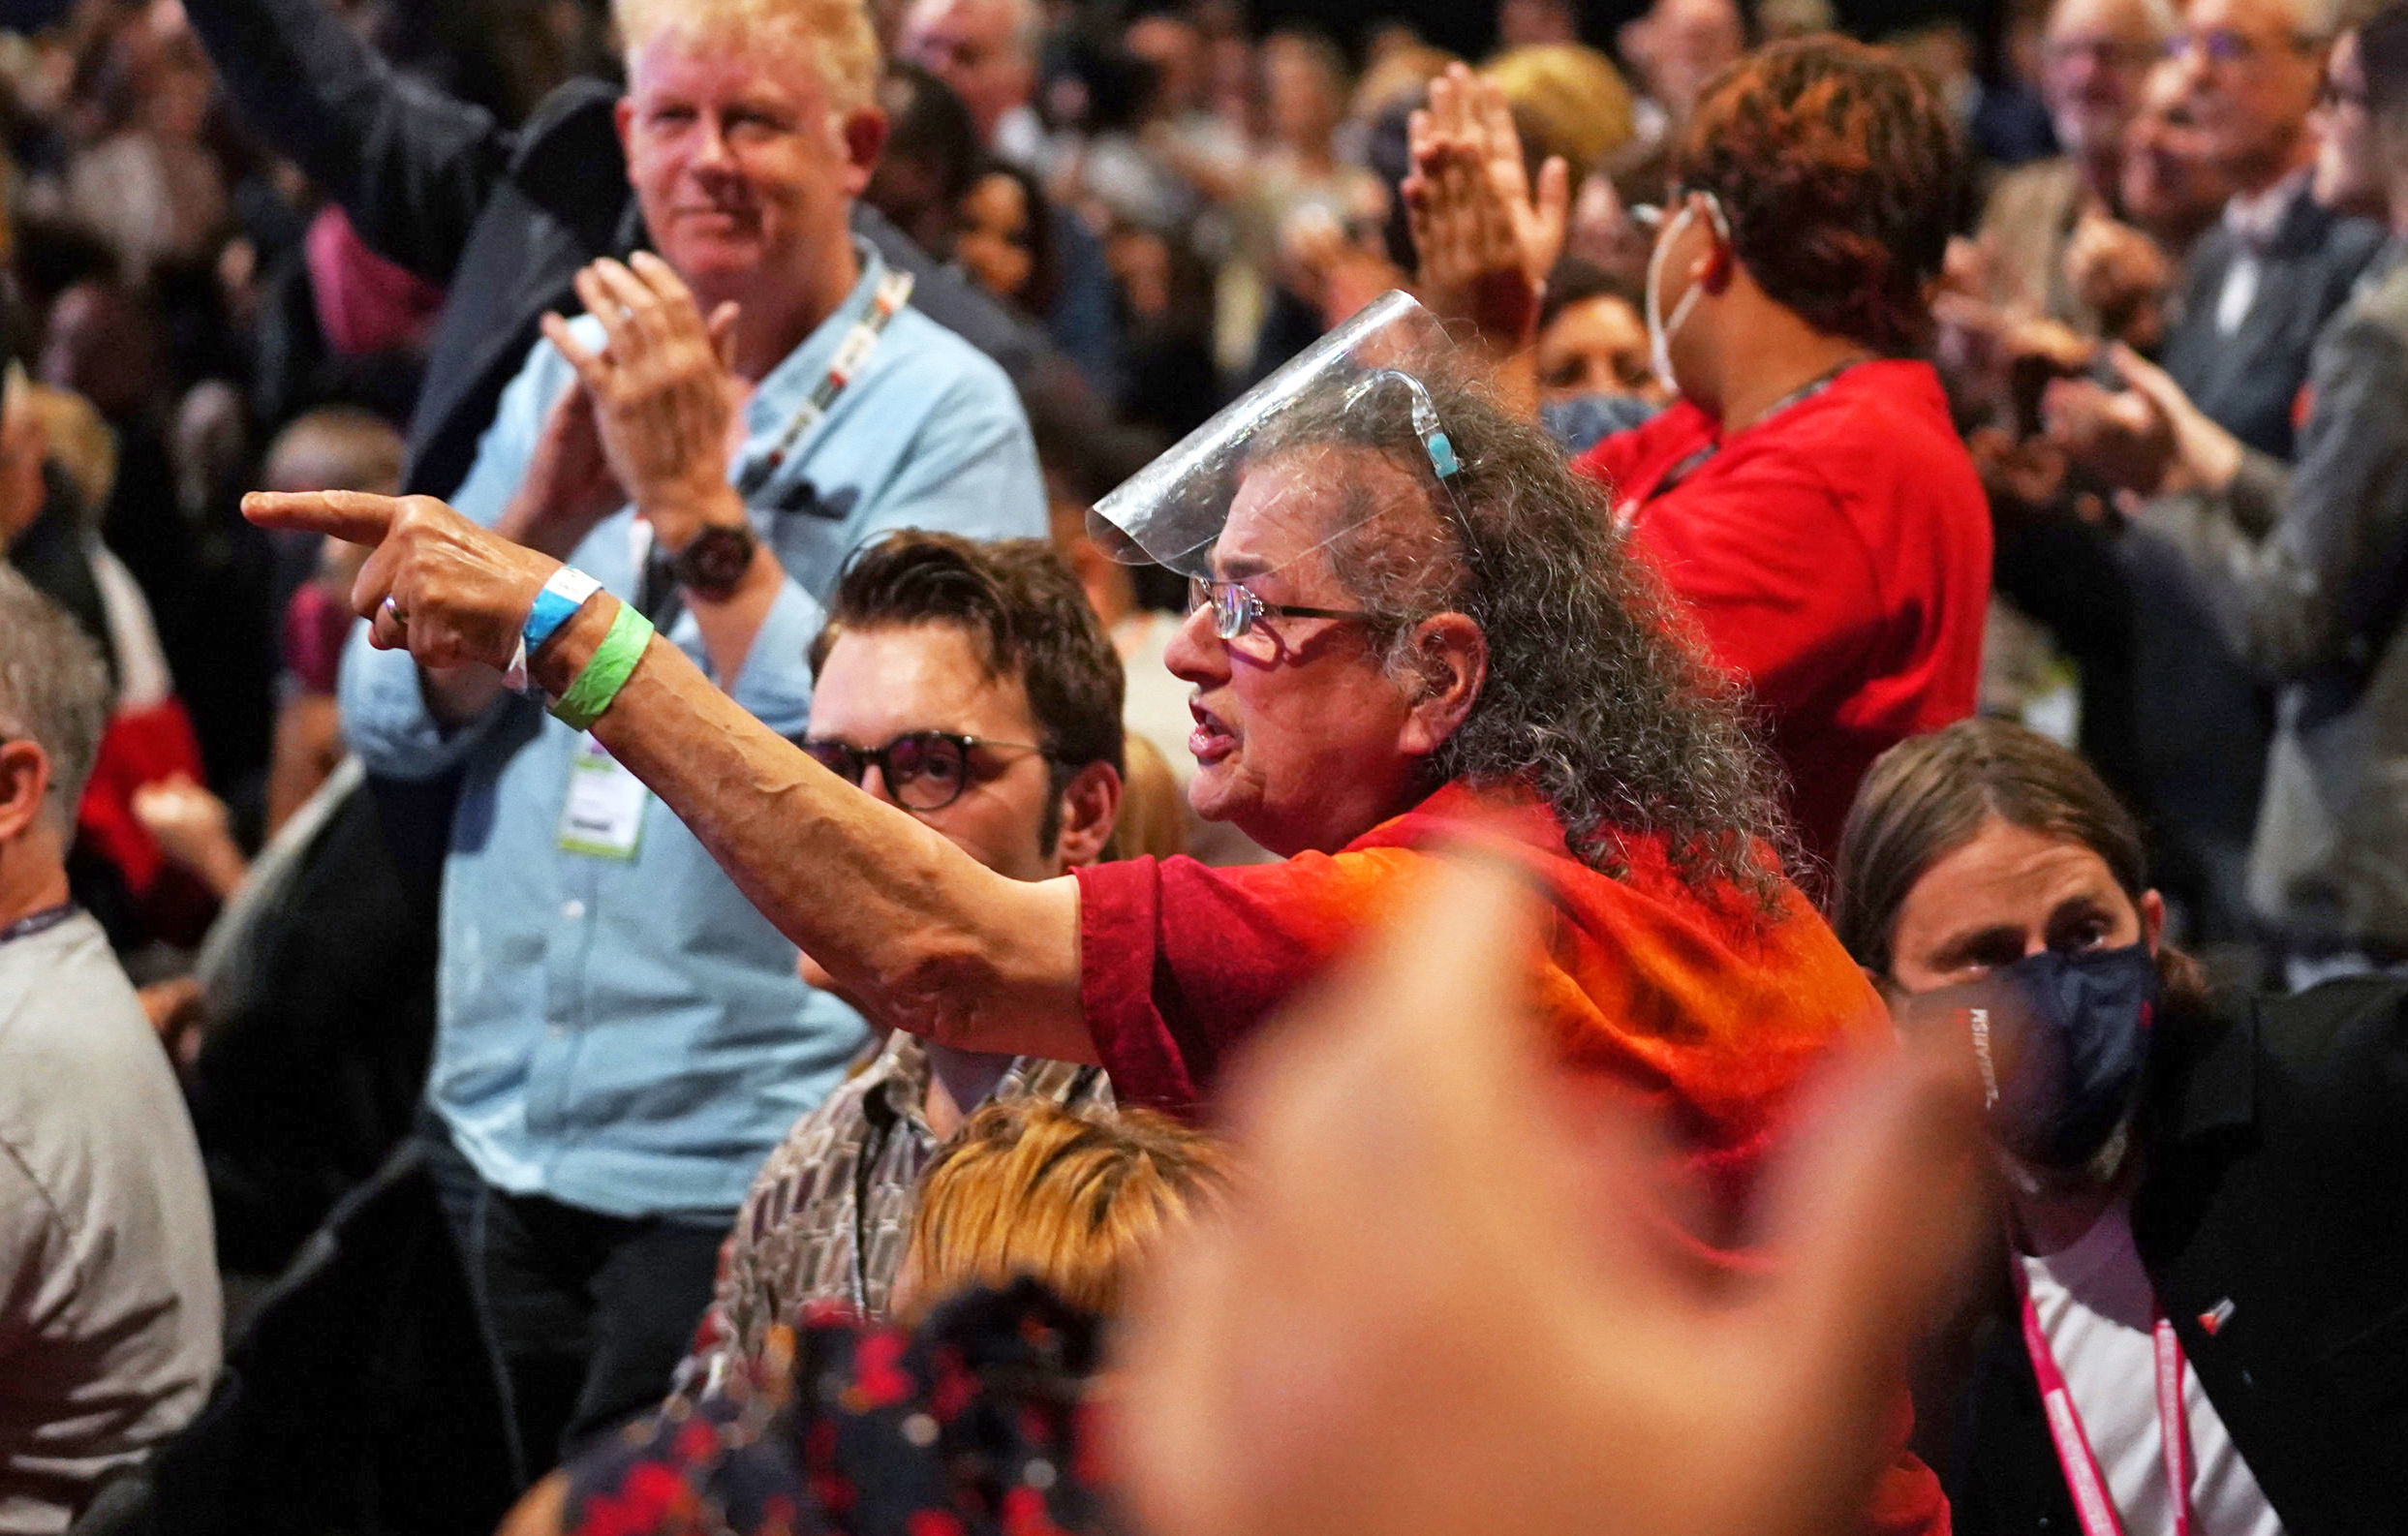 <p>Labour activist Carole Vincent heckles during the keynote speech of Sir Keir Starmer at the Labour Party conference in Brighton. Picture date: Wednesday September 29, 2021.</p>